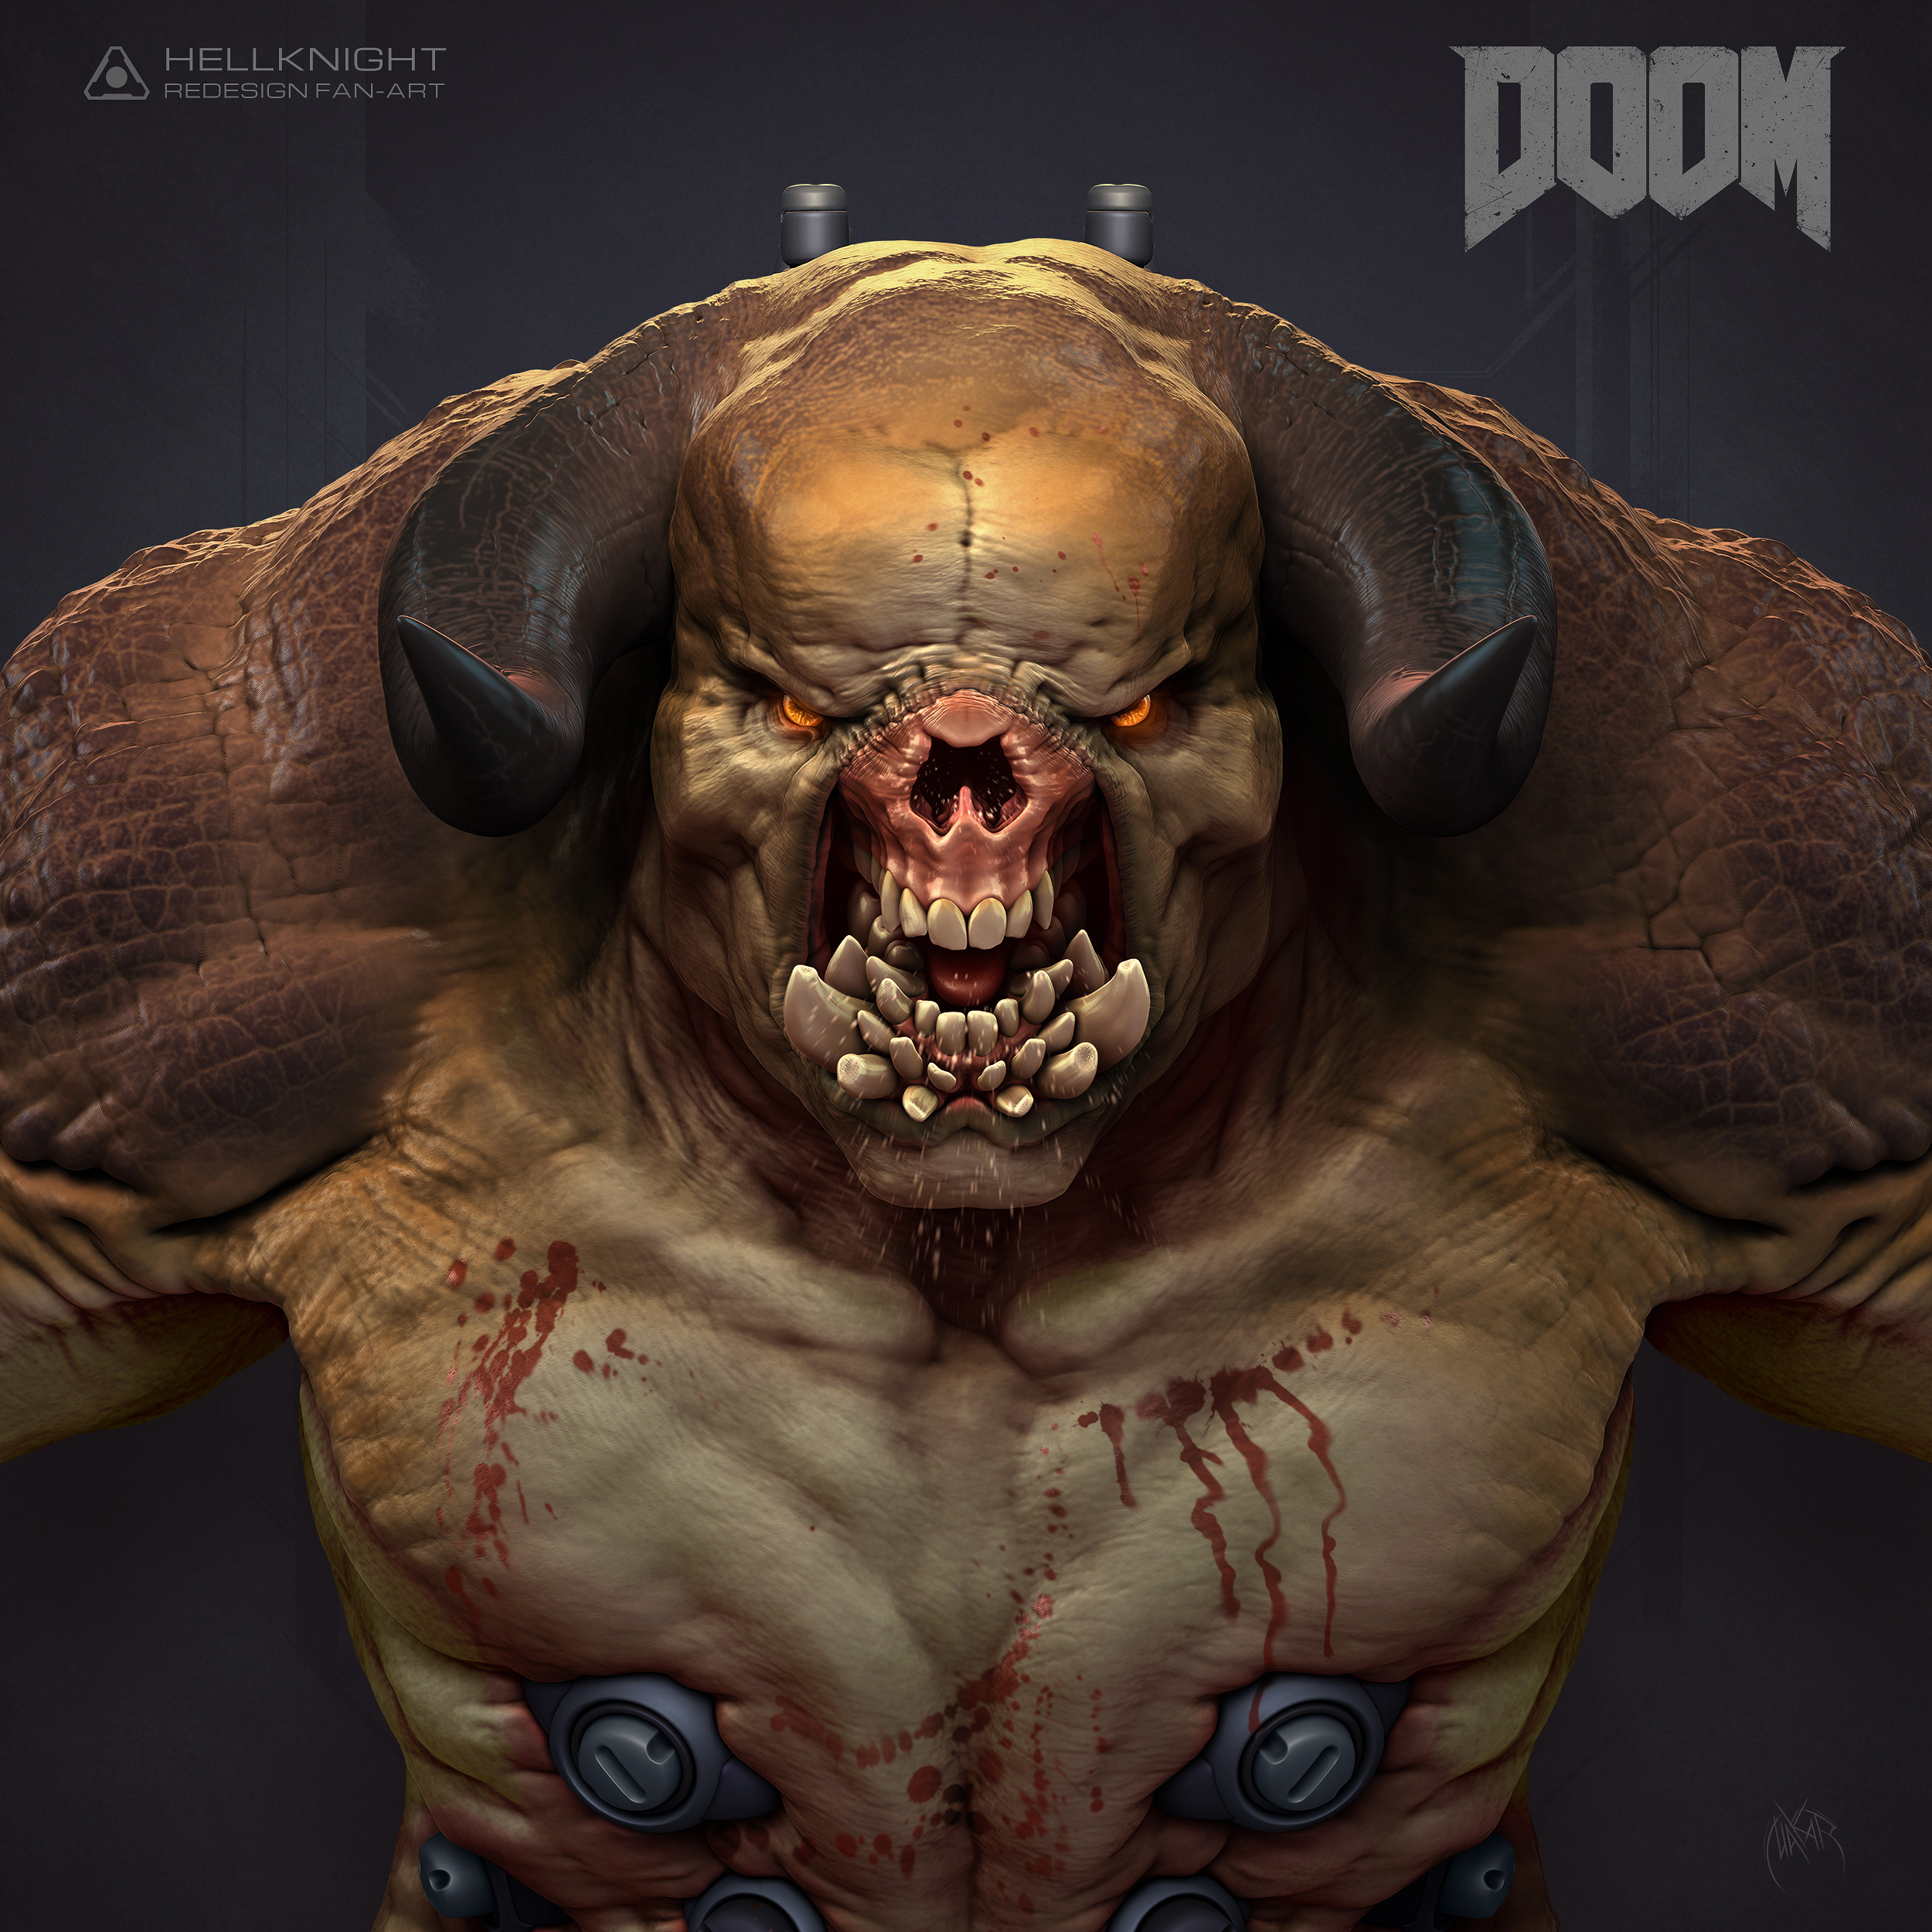 Doom_hellknight_06g.jpg